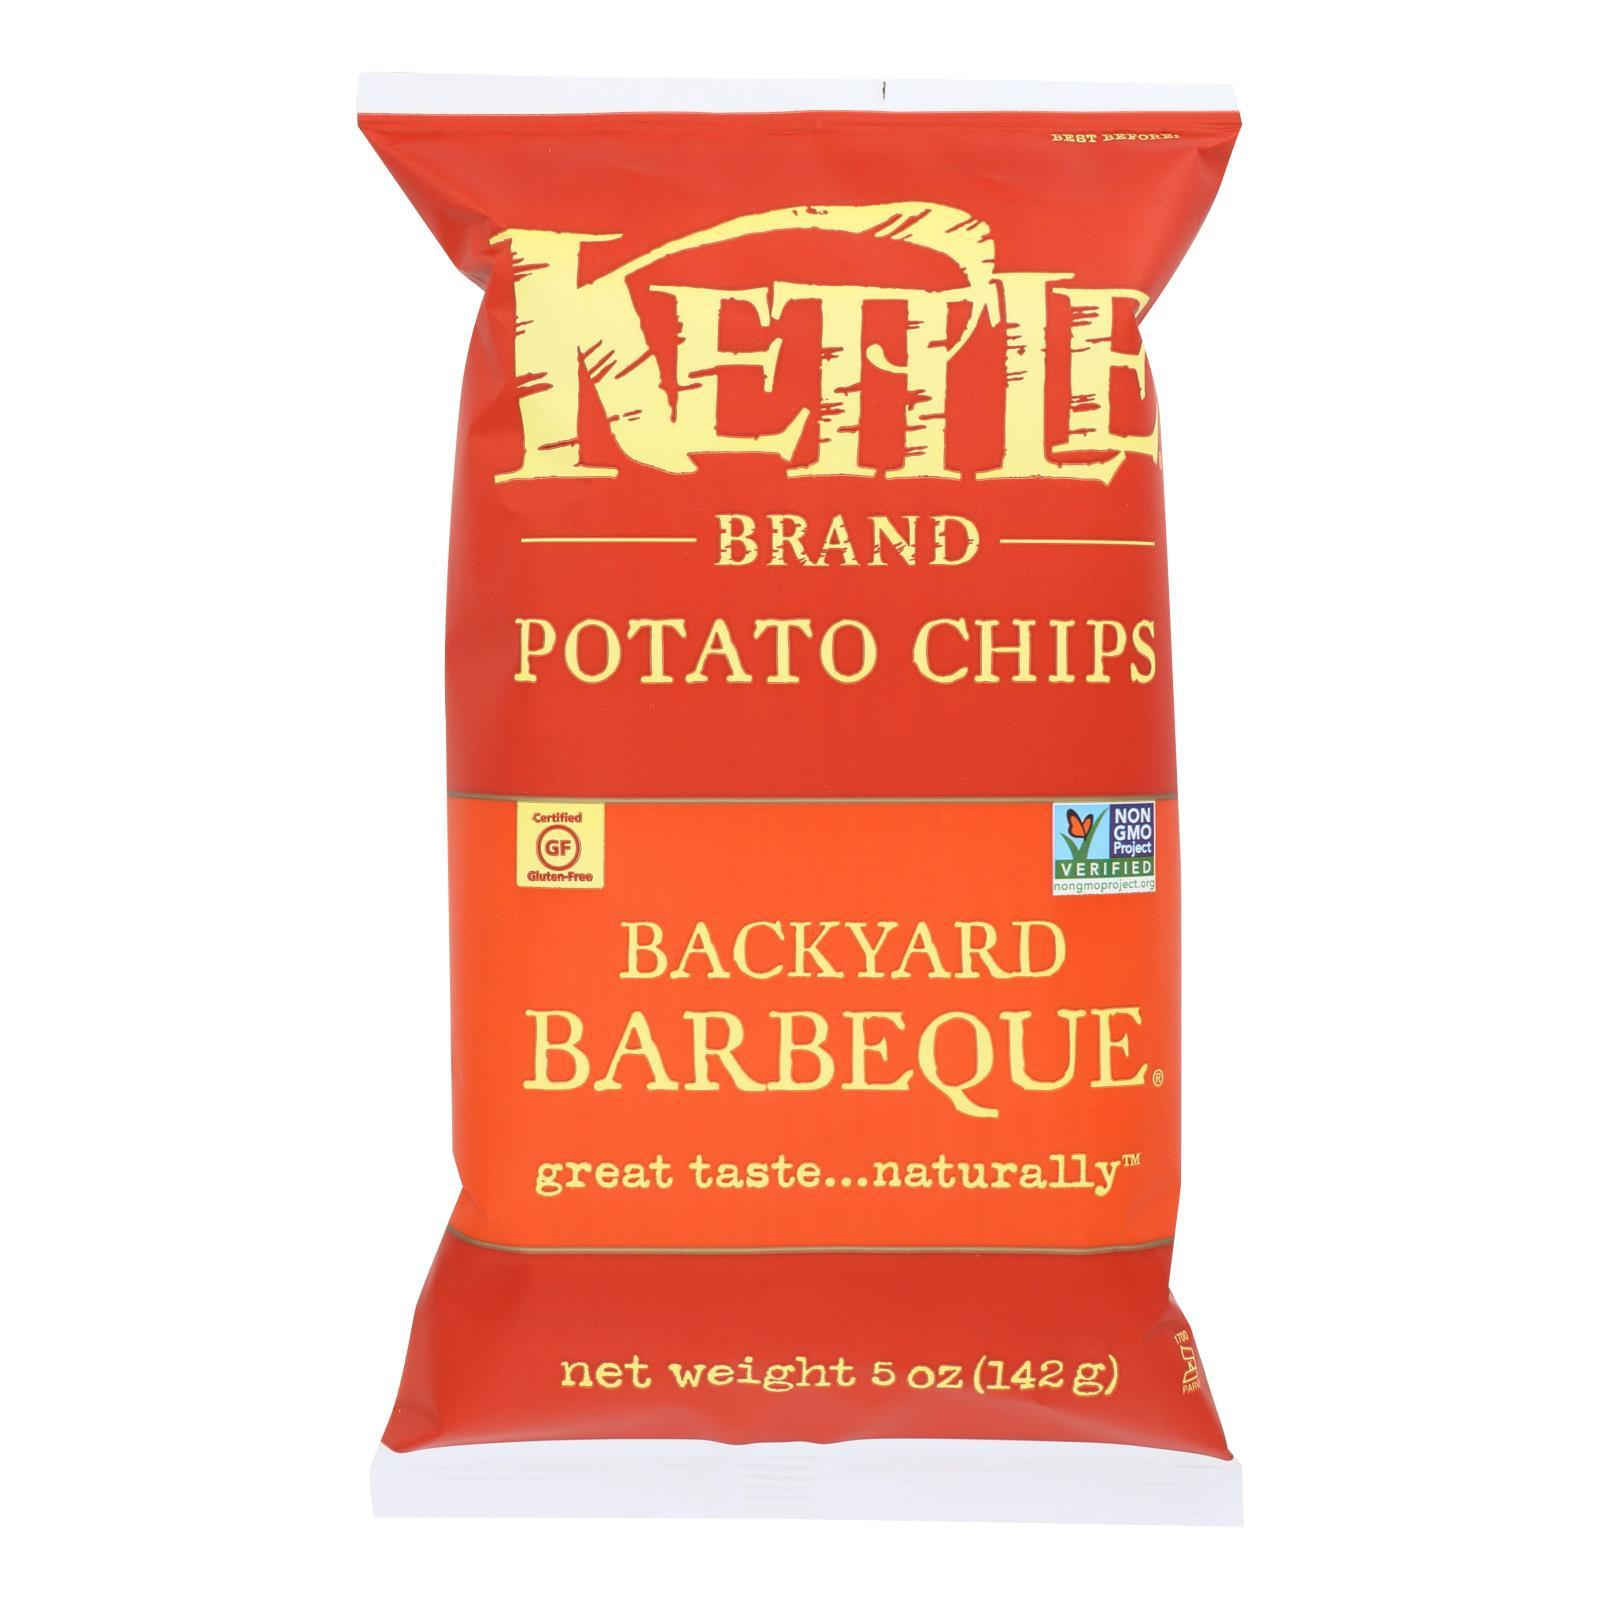 Kettle Brand Potato Chips - Backyard Barbeque - Case Of 15 - 5 Oz. - BeeGreen